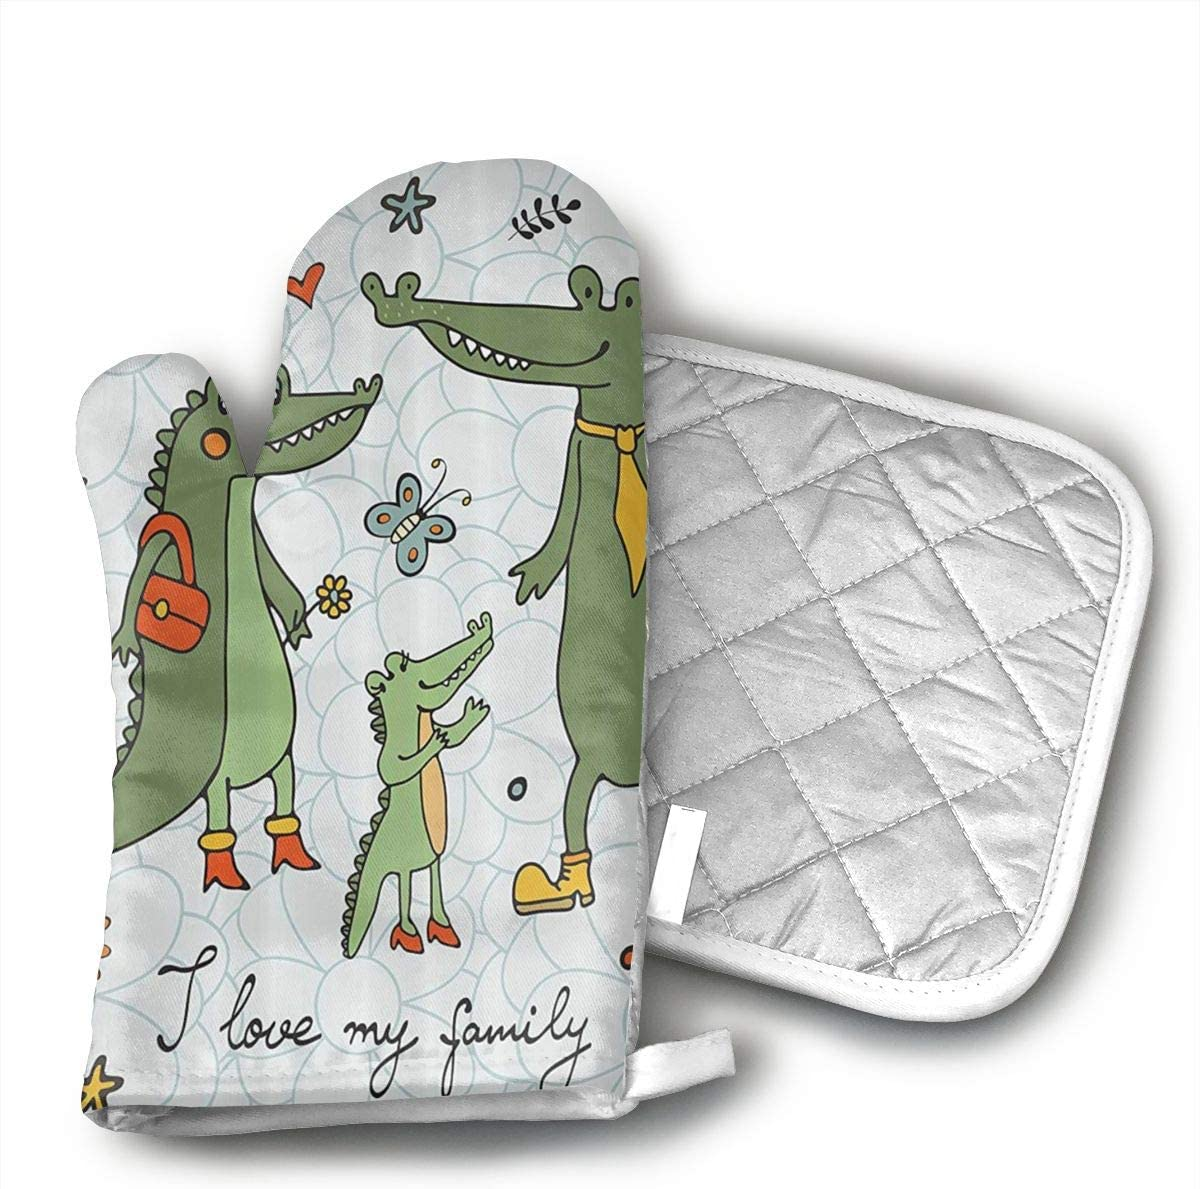 Cute Hand Drawn Alligators Natural Kitchen Heat Resistant Oven Mitts Pot Holders Non Slip Oven Gloves for Kitchen Cooking Baking, BBQ, Grilling